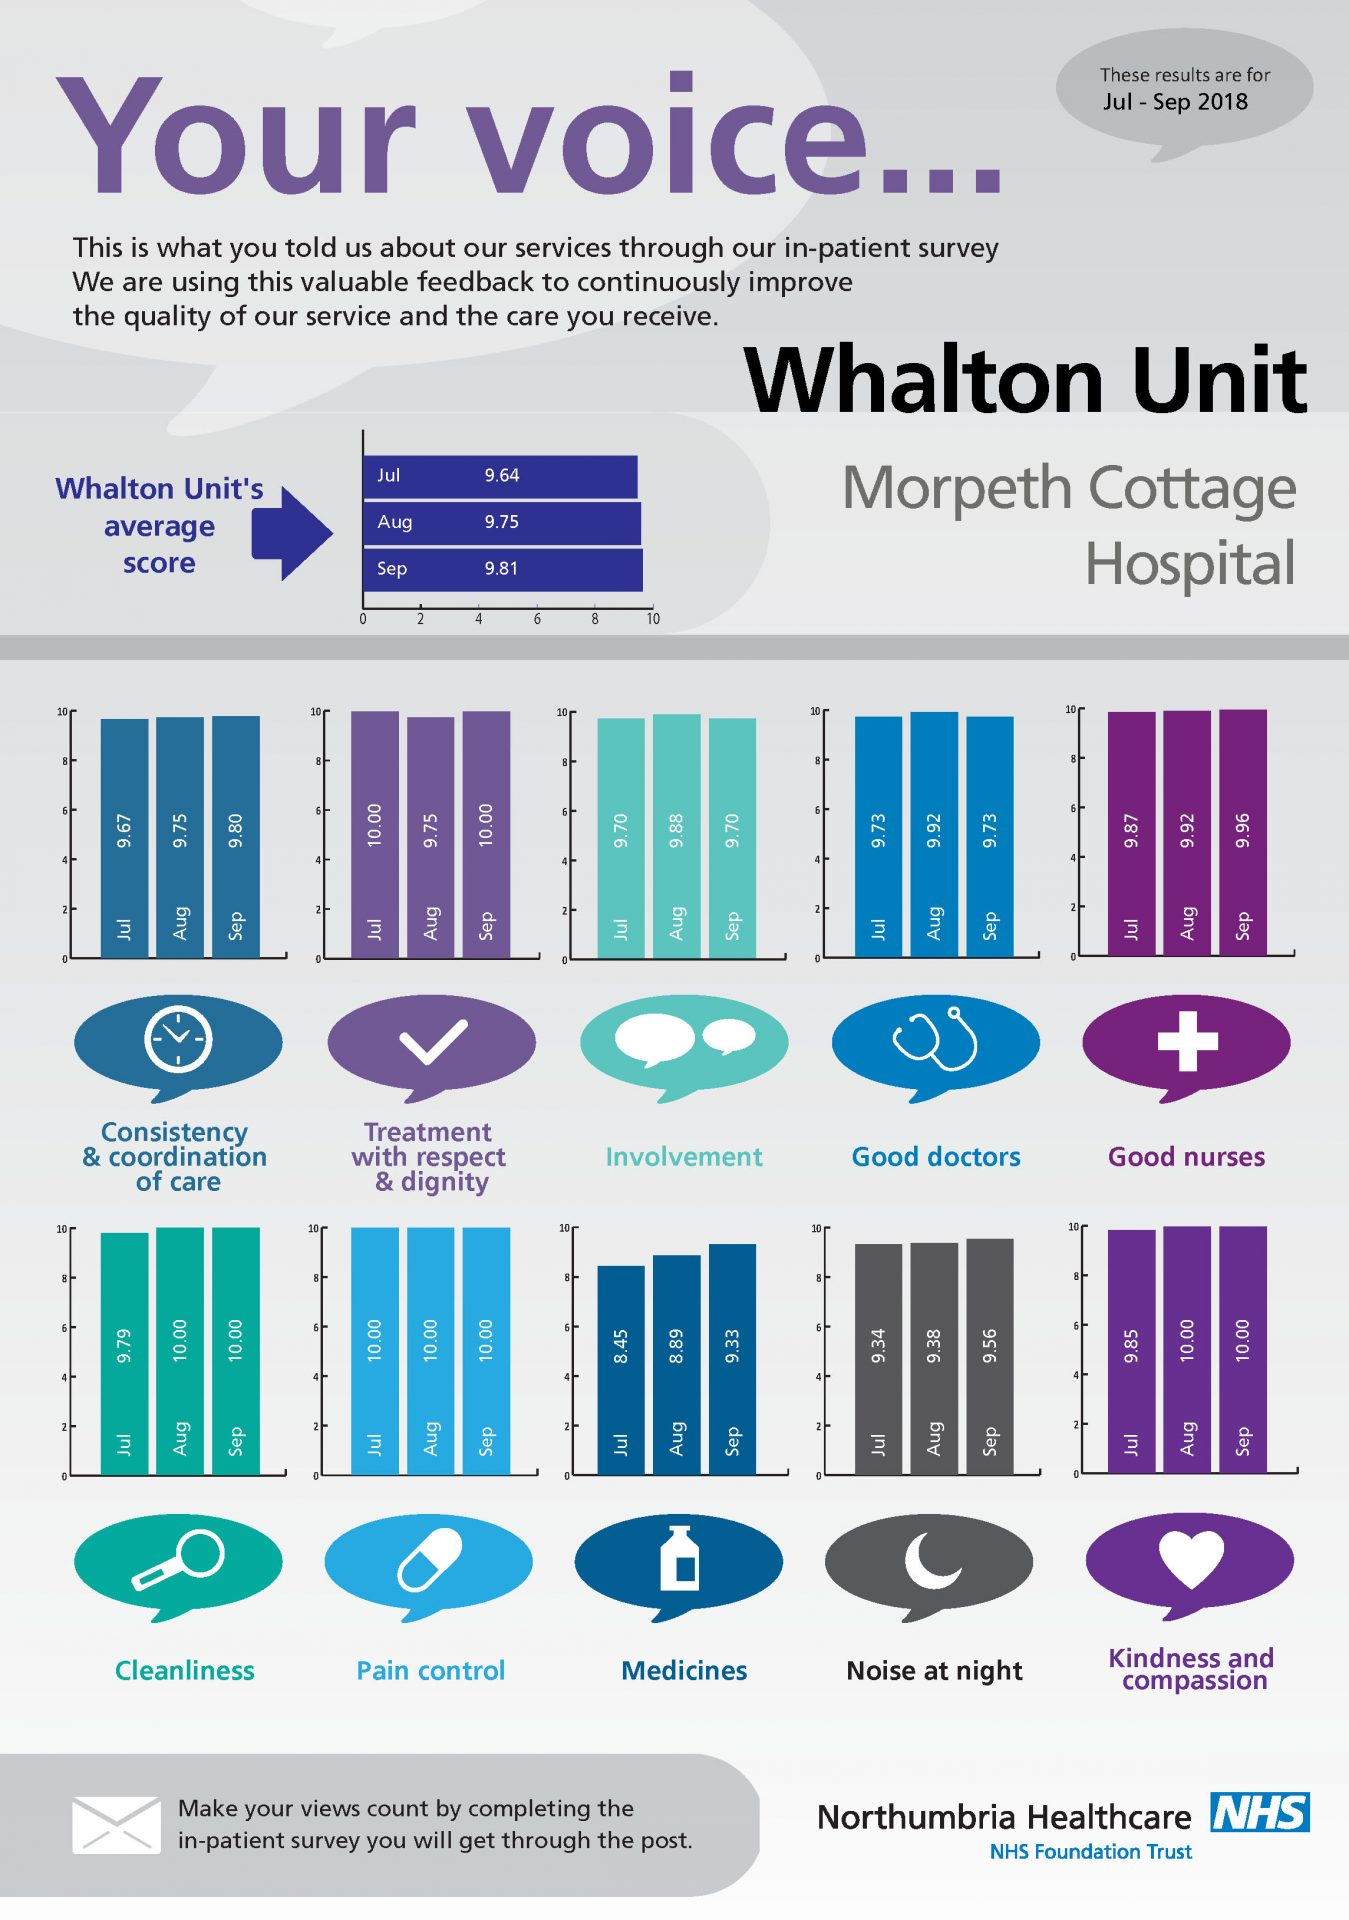 Morpeth Cottage Hospital - Whalton Unit